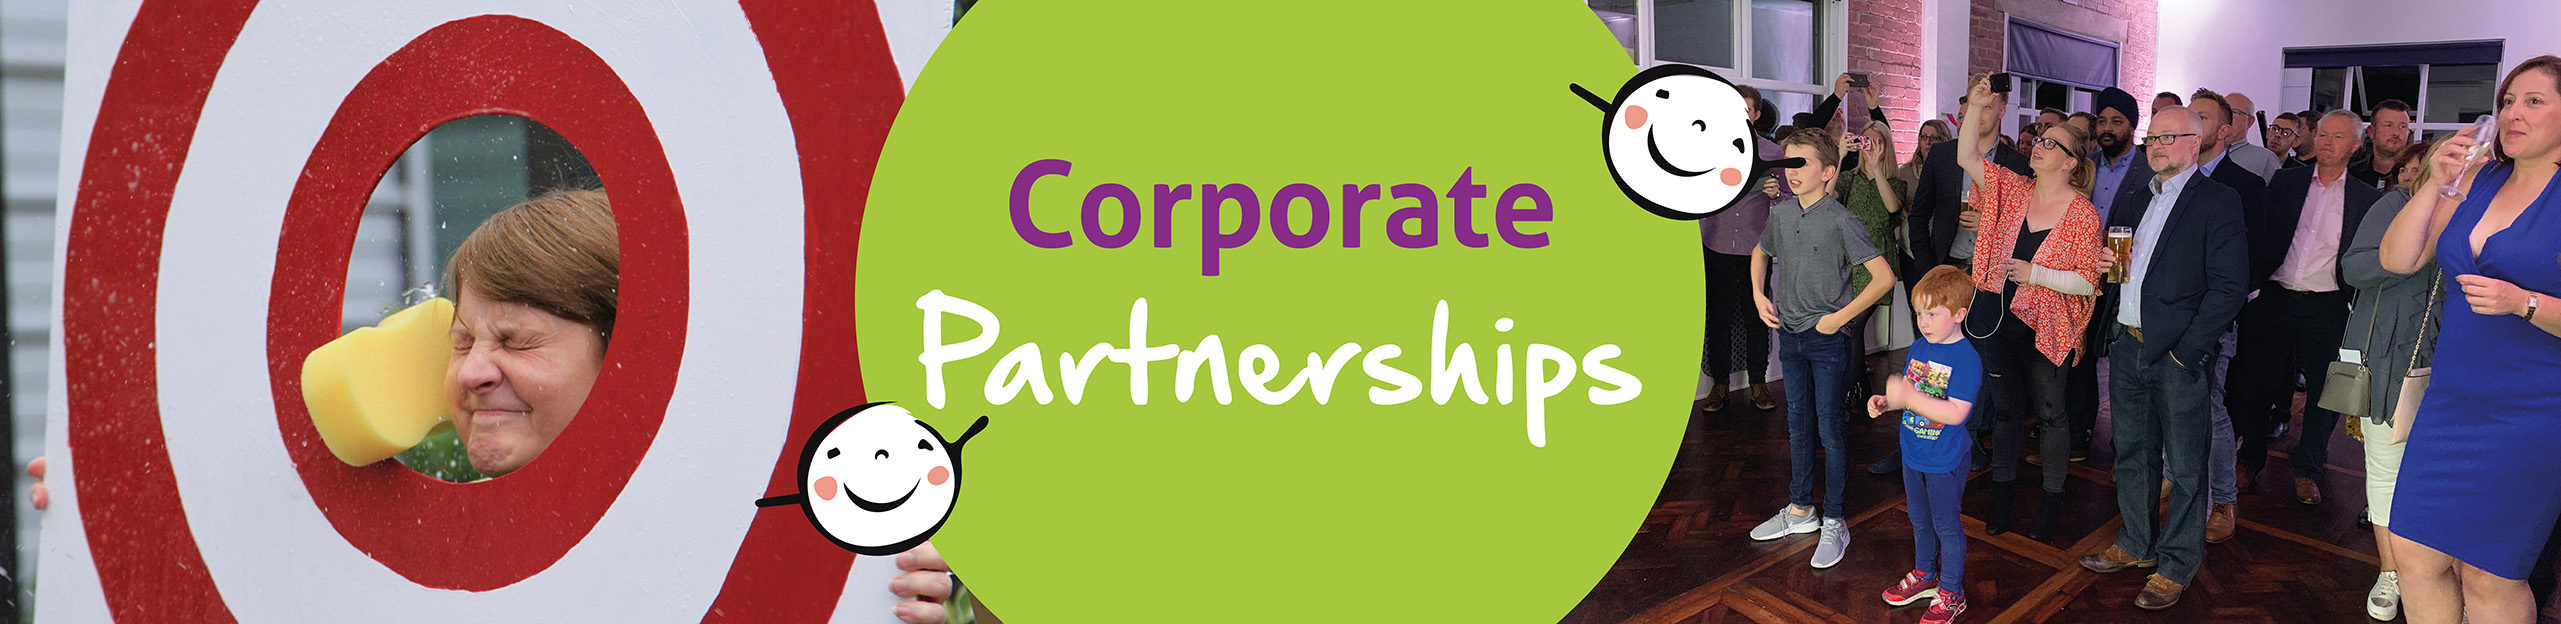 derian house corporate partnerships